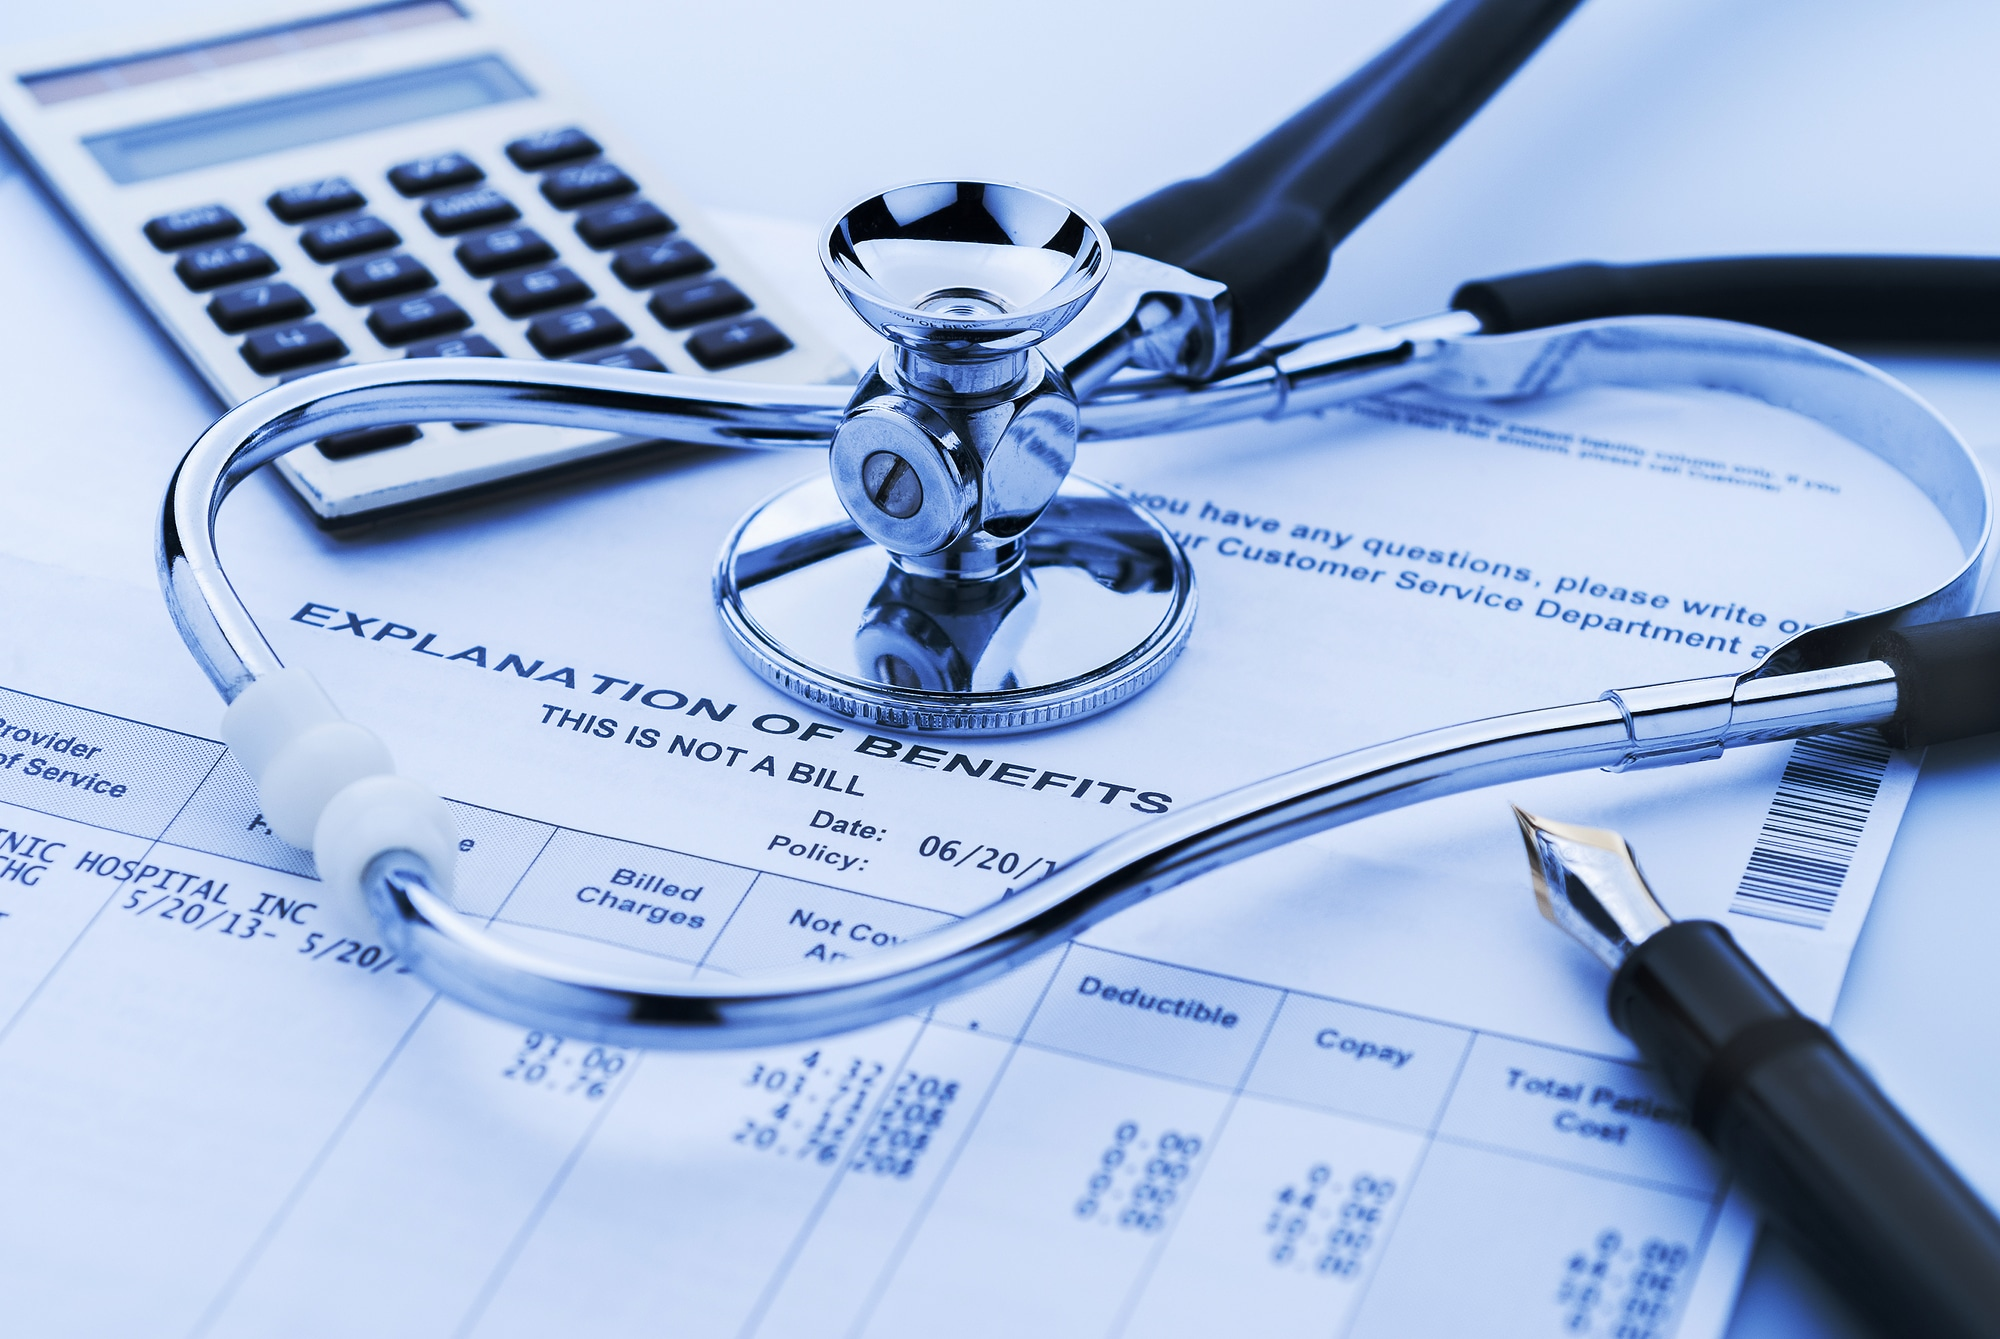 stethoscope and calculator on medical bill